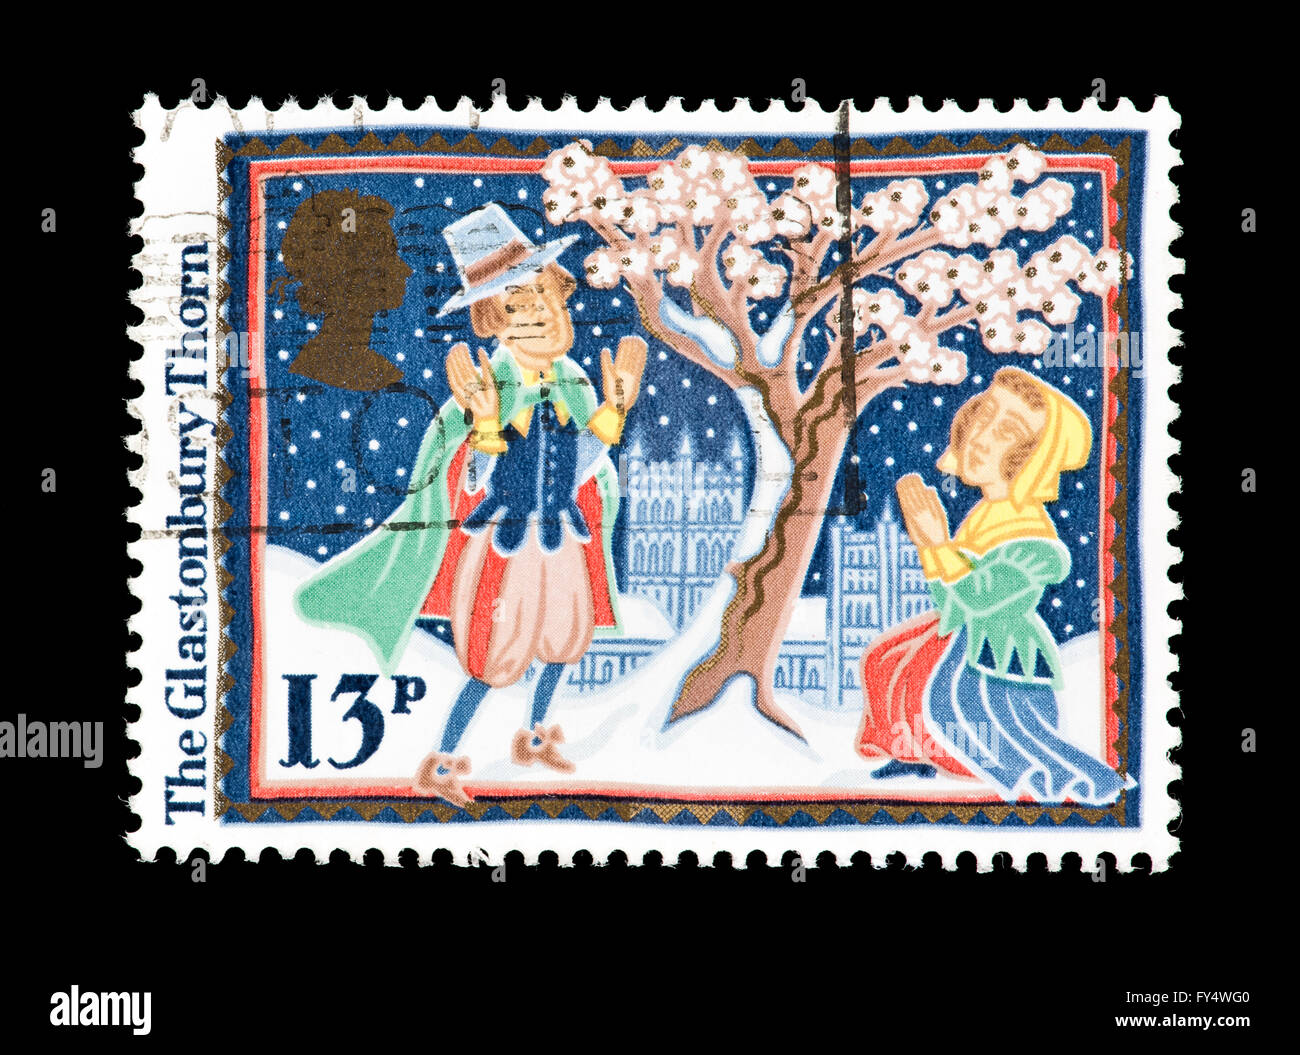 Postage stamp from Great Britain depicting the Glastonbury